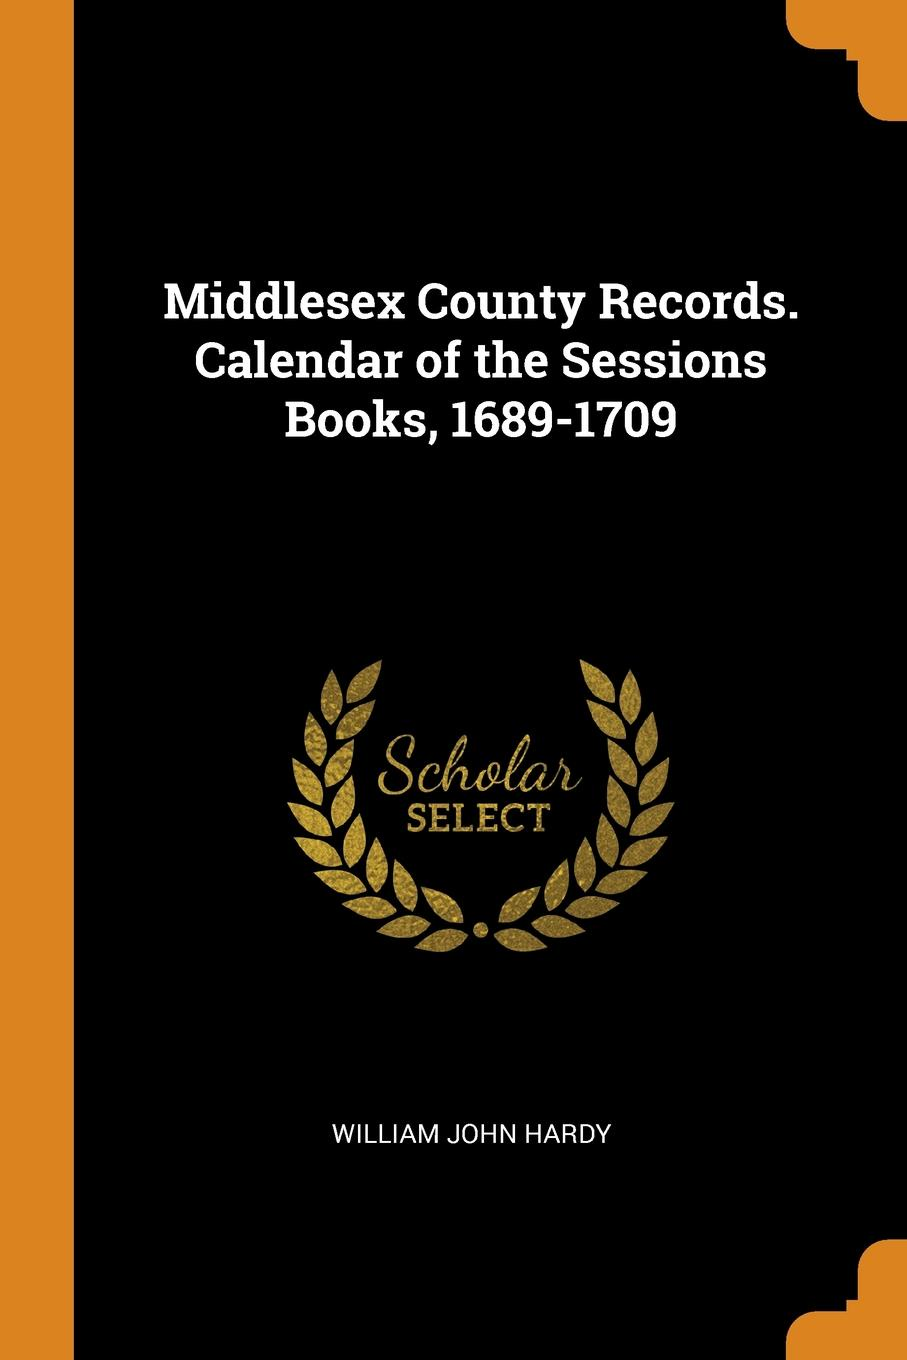 Middlesex County Records. Calendar of the Sessions Books, 1689-1709. William John Hardy